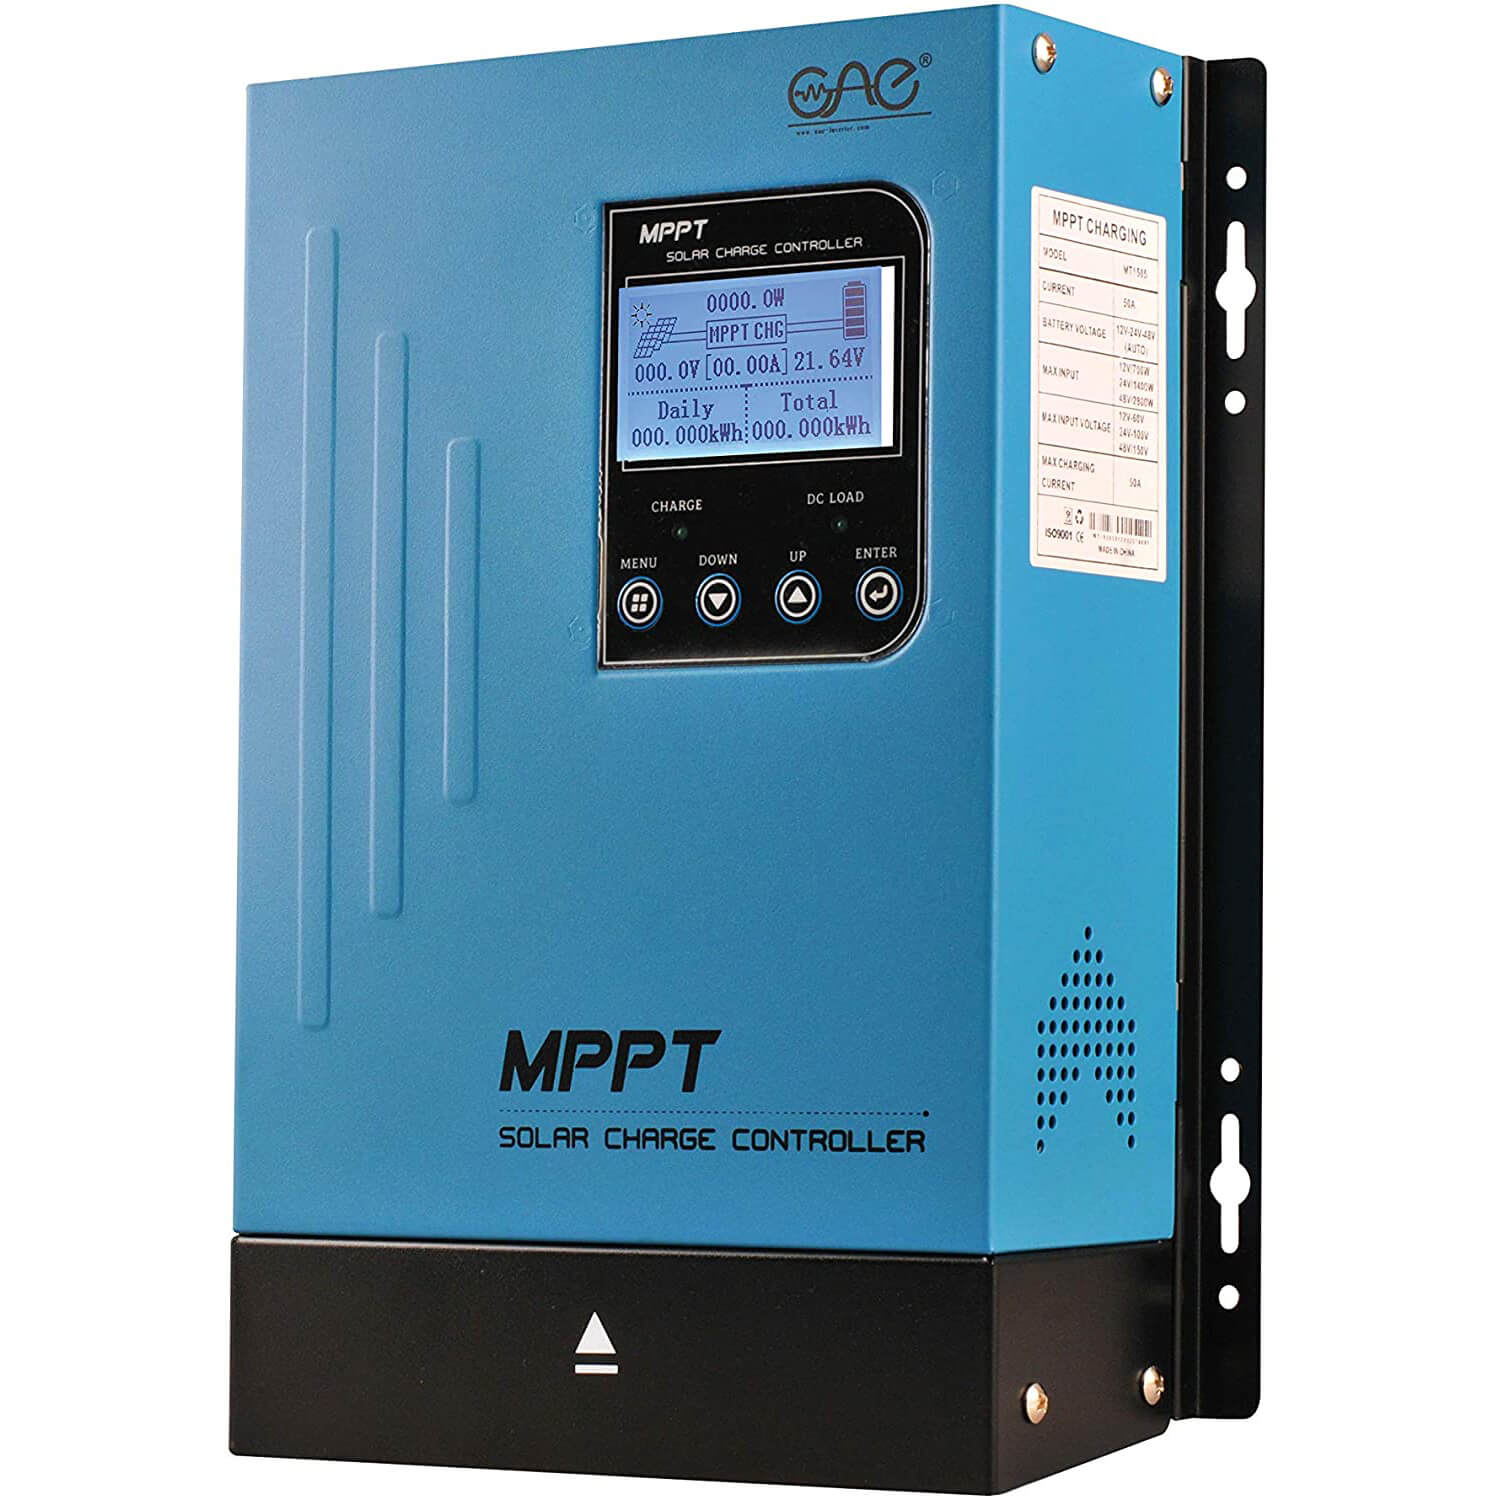 Onesolar 60A MPPT Solar Charge Controller